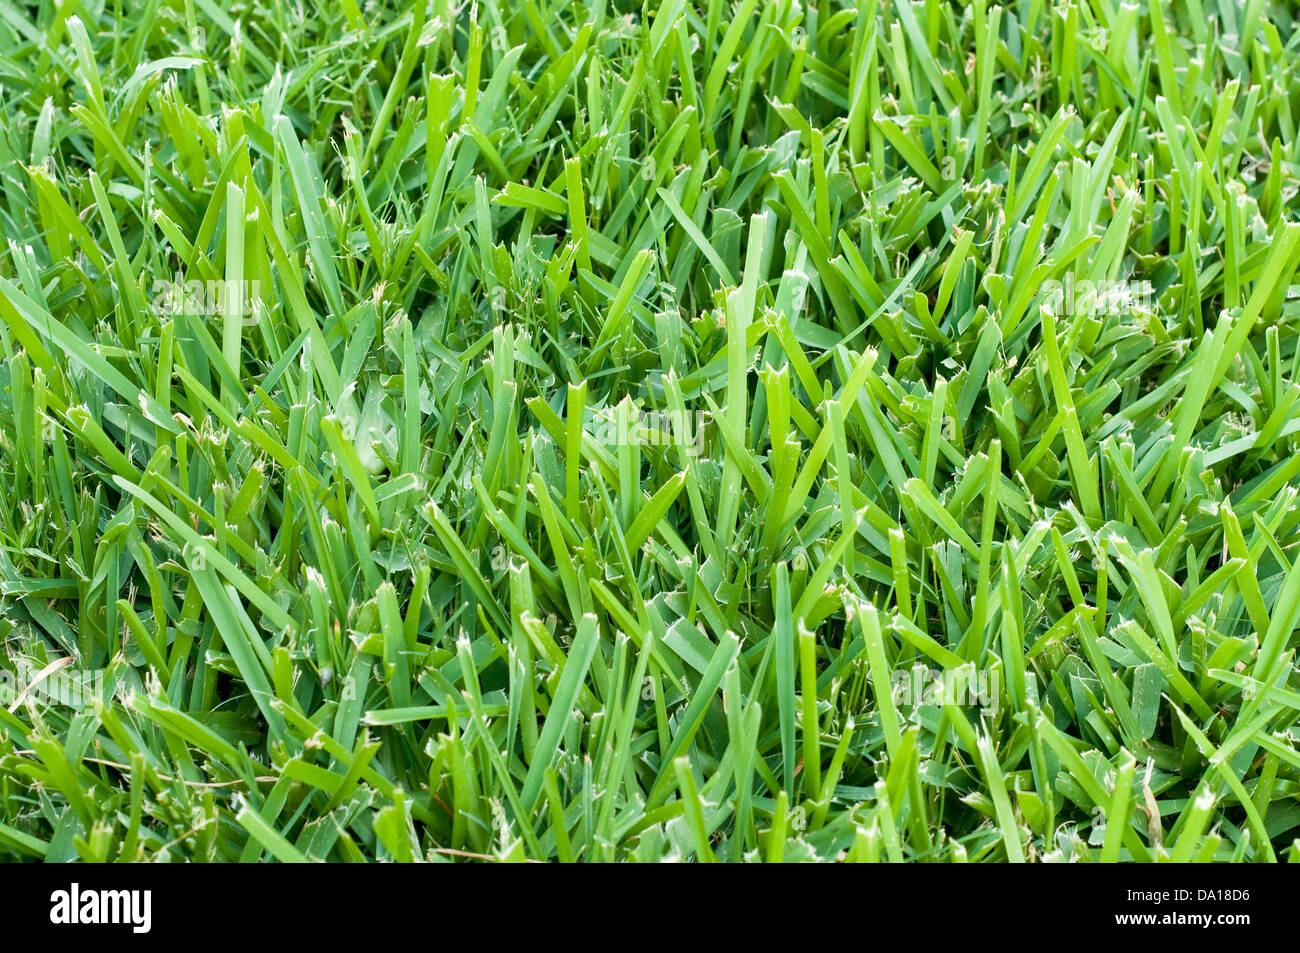 Background of saint augustine grass. - Stock Image